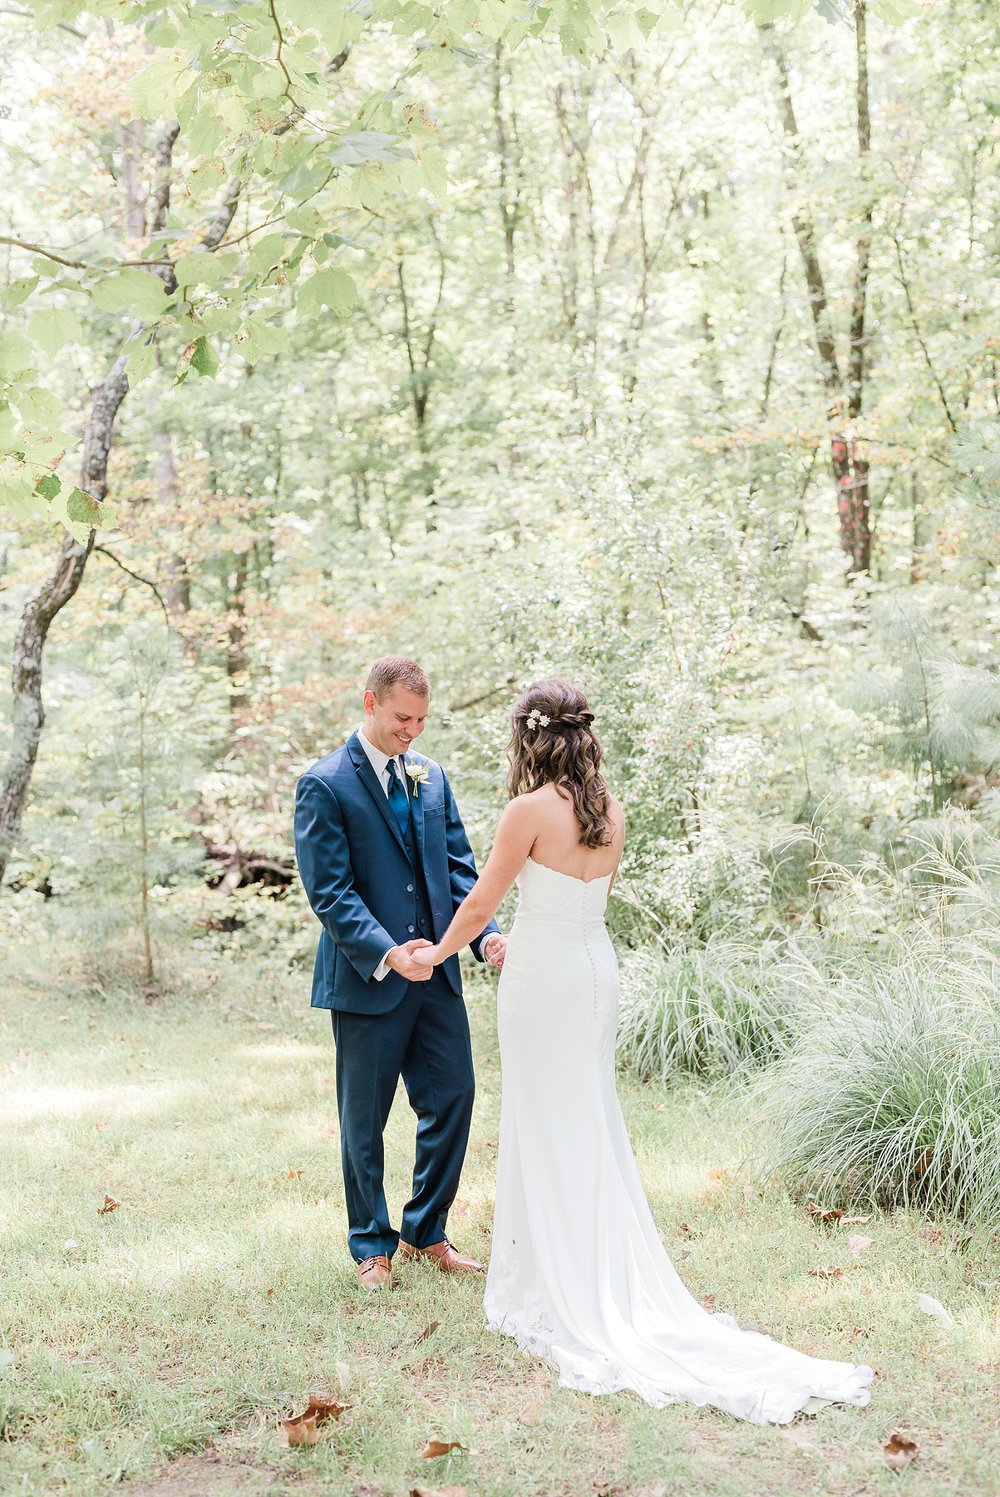 Romantic Summer Sunset Wedding Ceremony at Little Piney Lodge St. Louis Missouri by Kelsi Kliethermes Photography Fine Art Photographer_0031.jpg